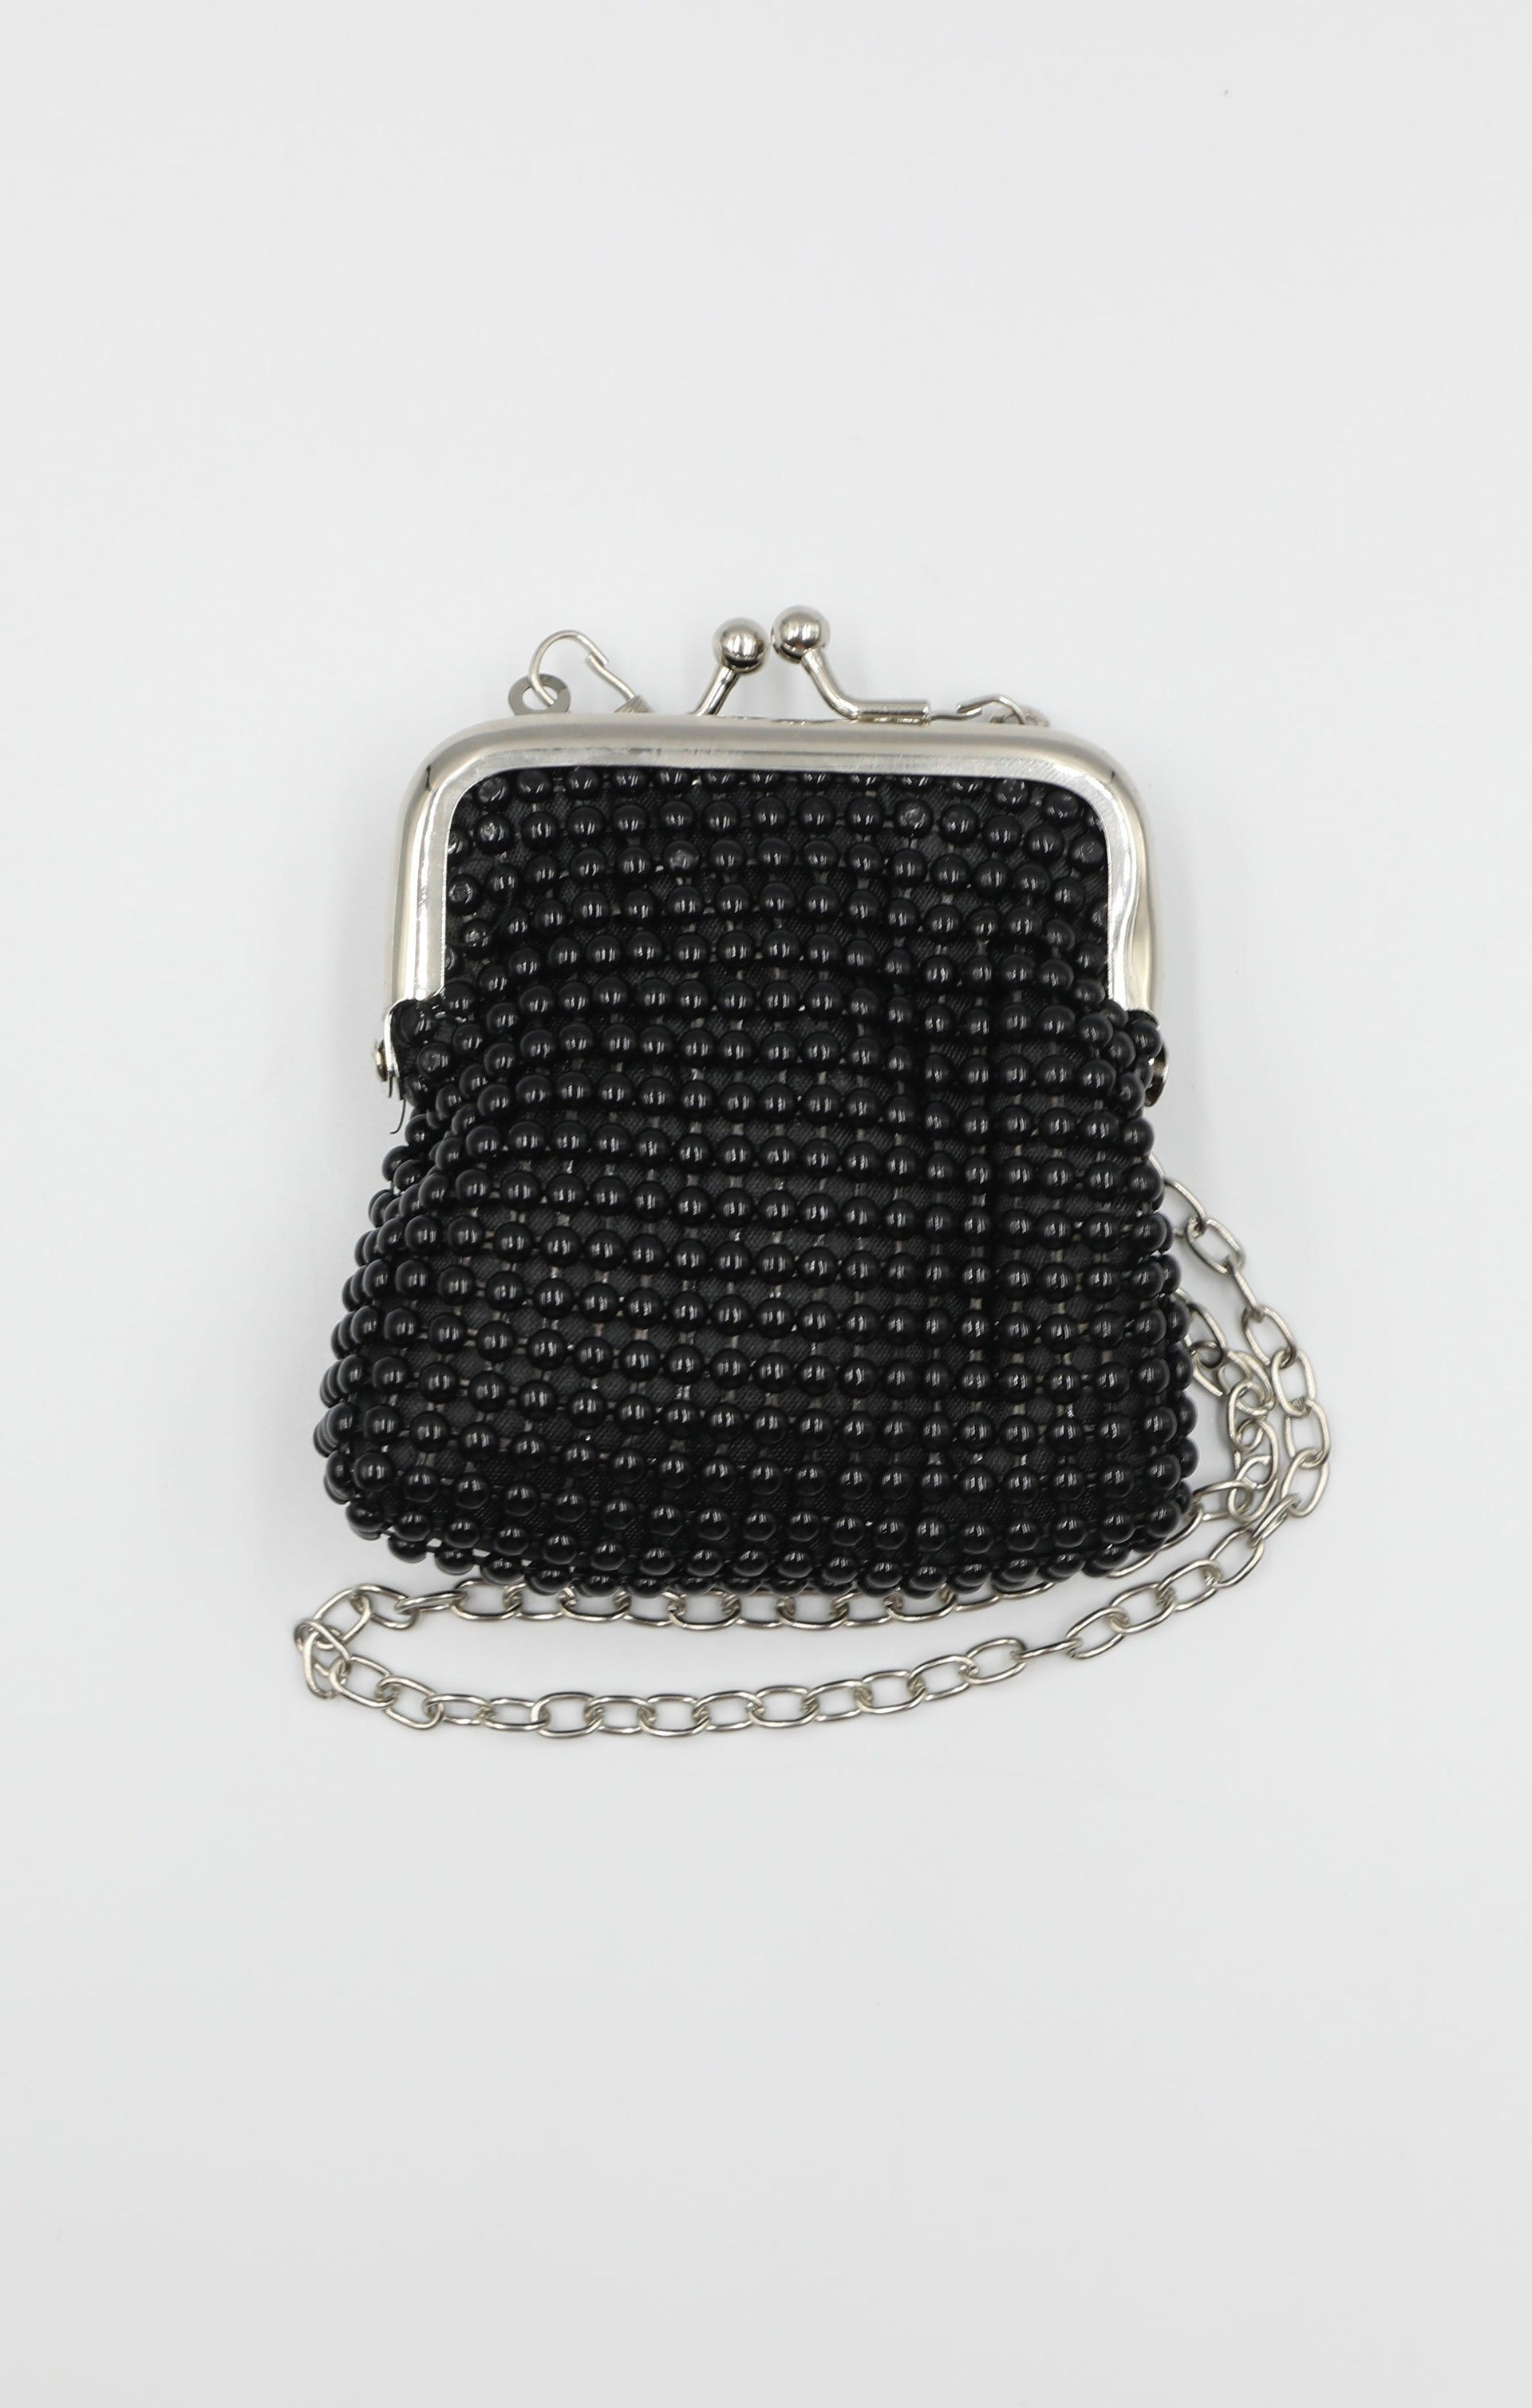 Black Beaded Mini Coin Purse Bag - Georgia